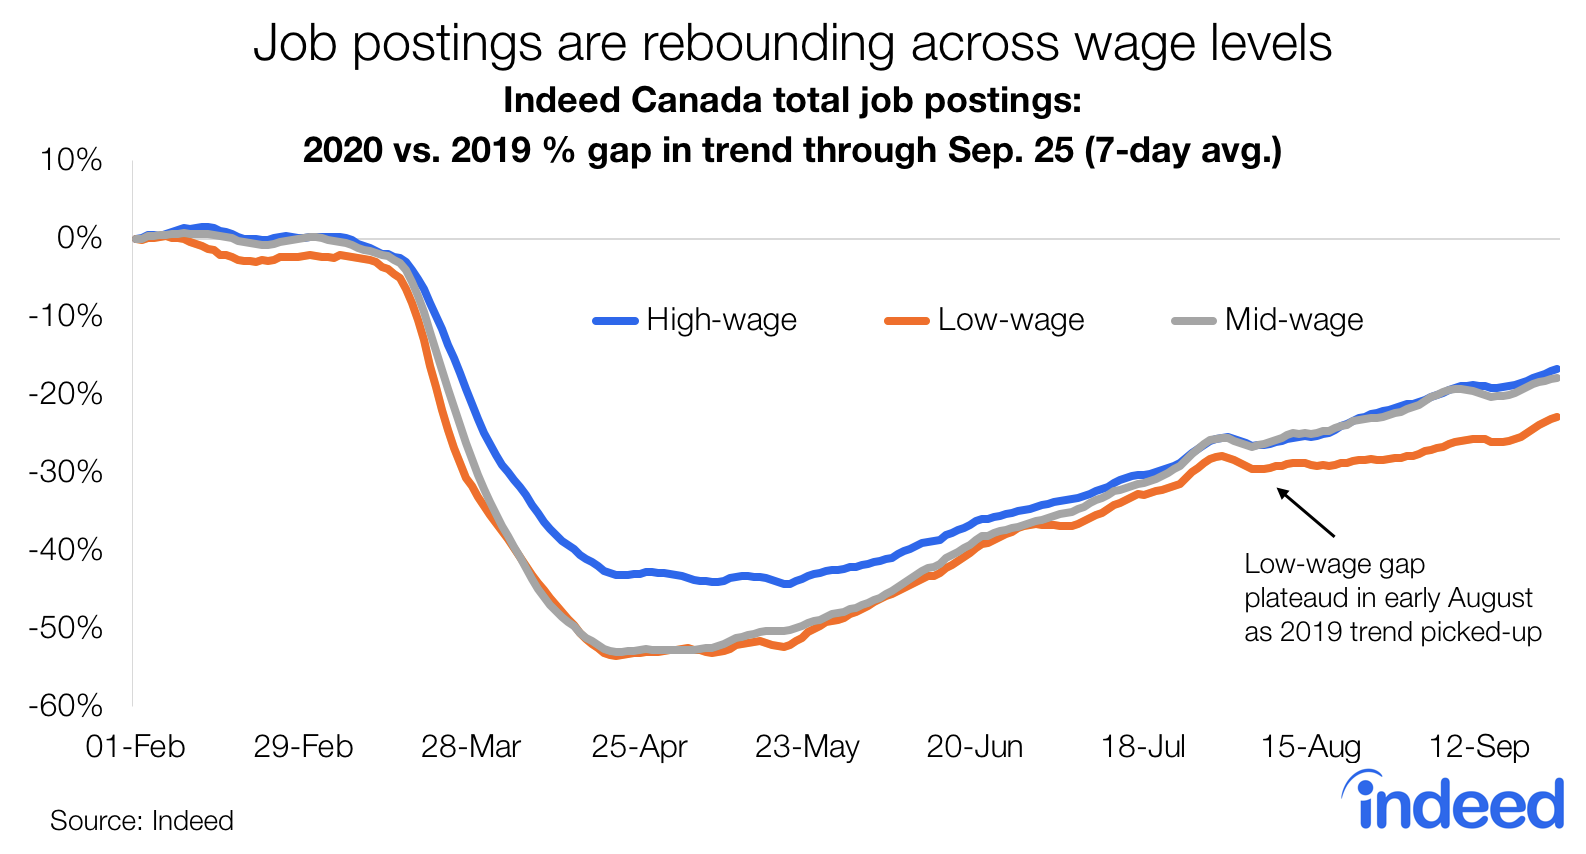 Line graph rebounding job posting trends across wage levels